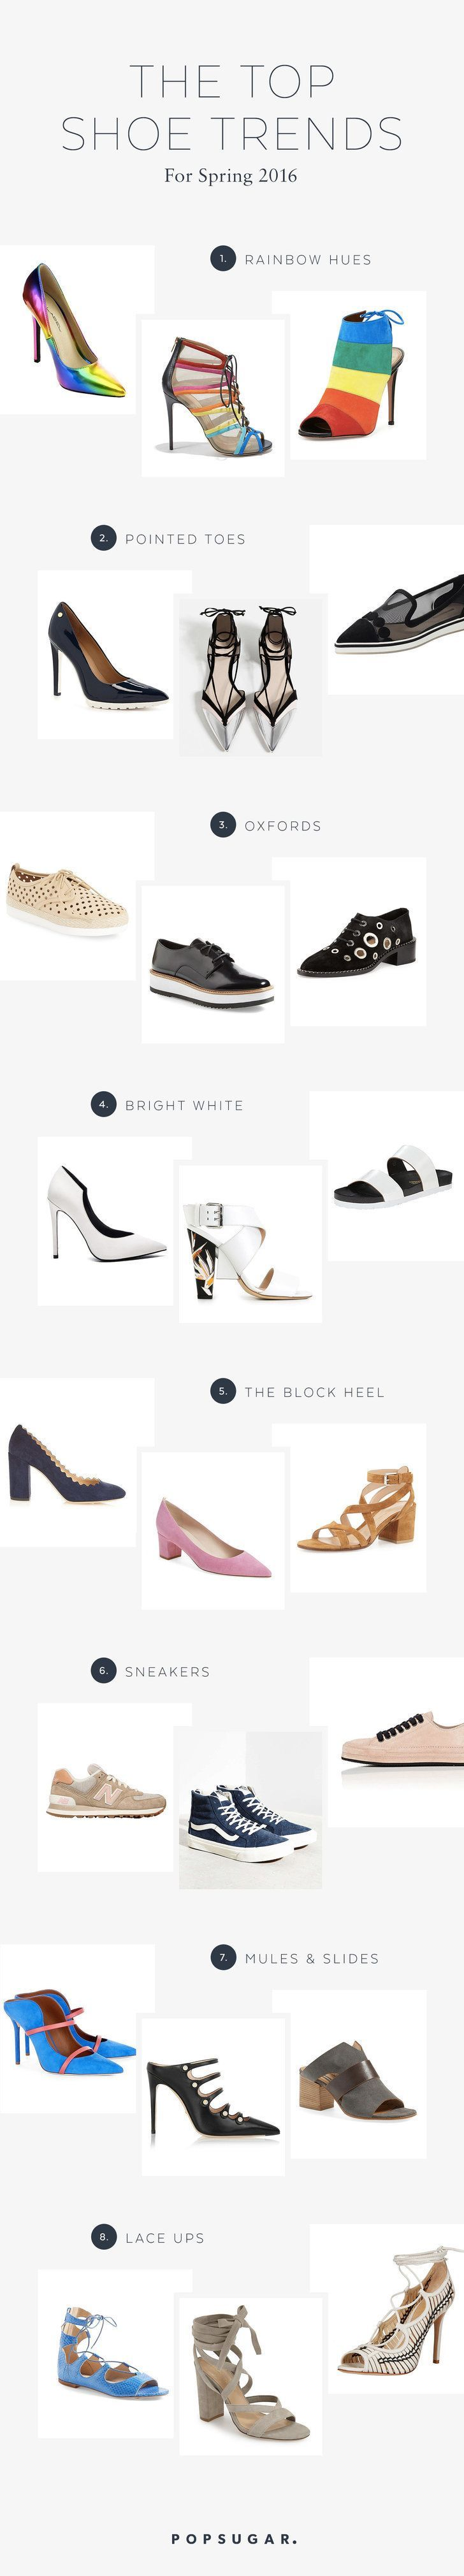 We can't get enough of these stylish Spring shoes!